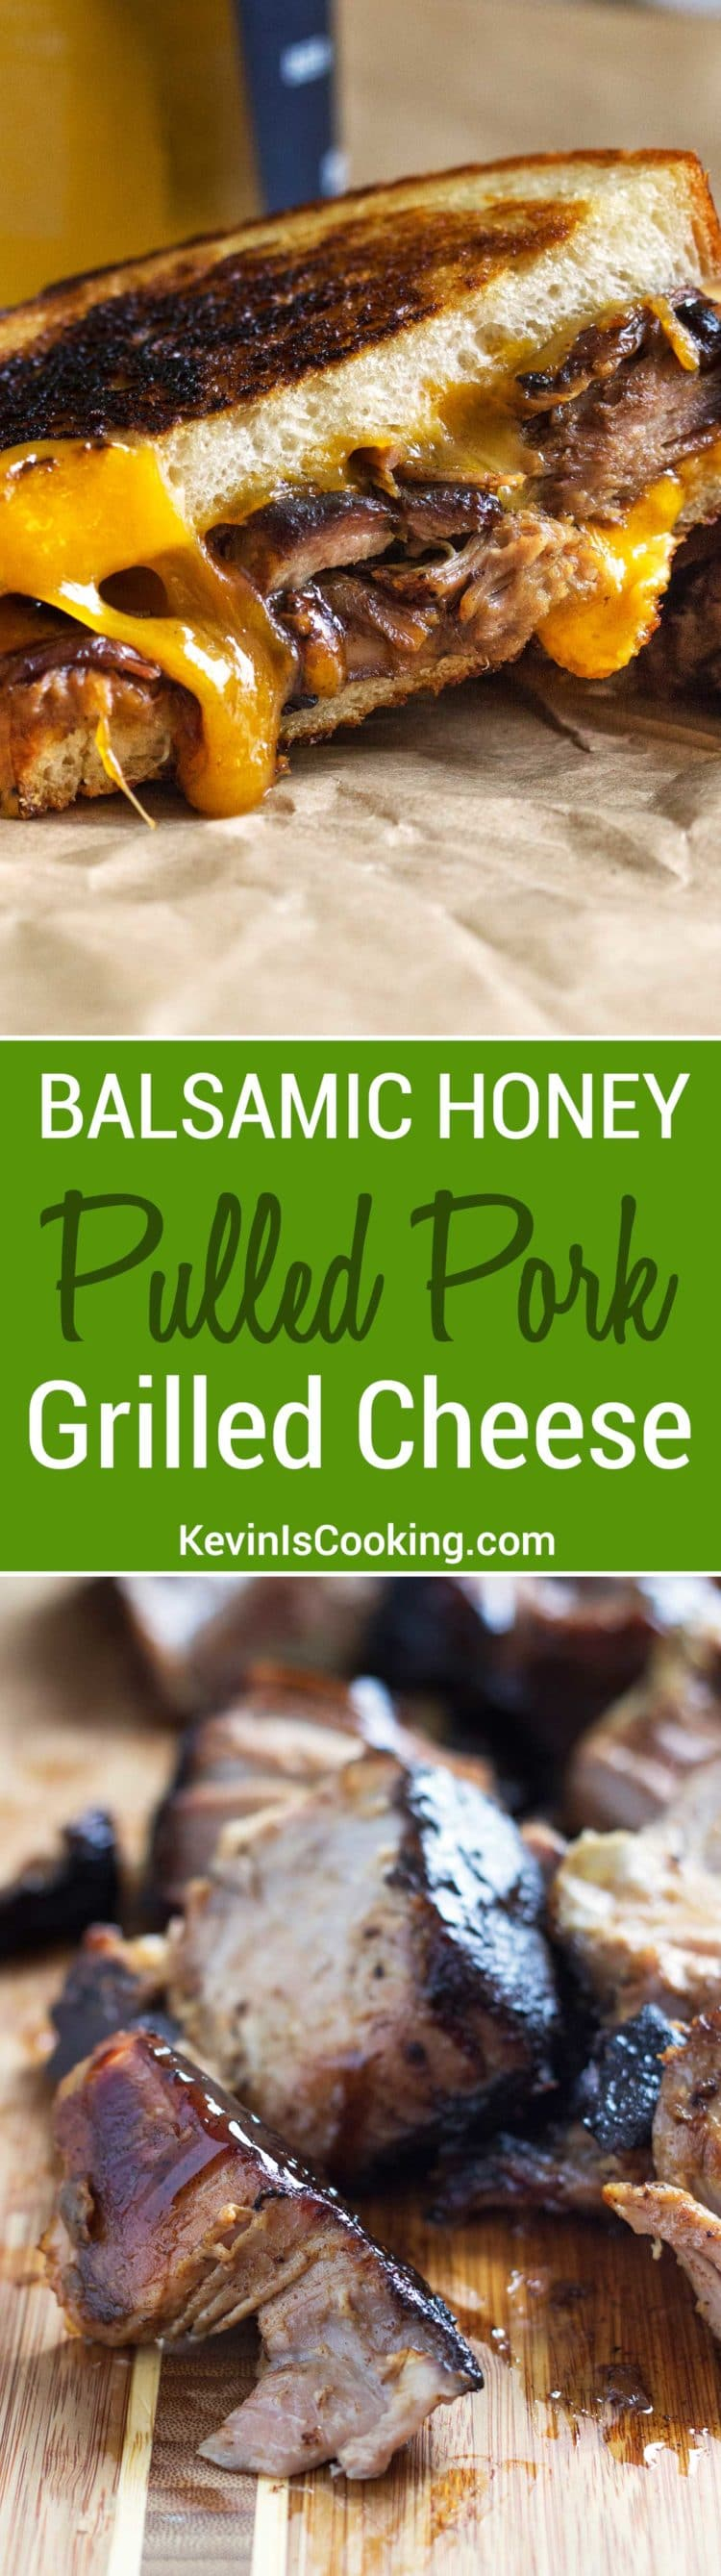 A huge favorite with friends and family, plus it's so easy. One recipe I go to time and again to stuff grilled cheese sandwiches!